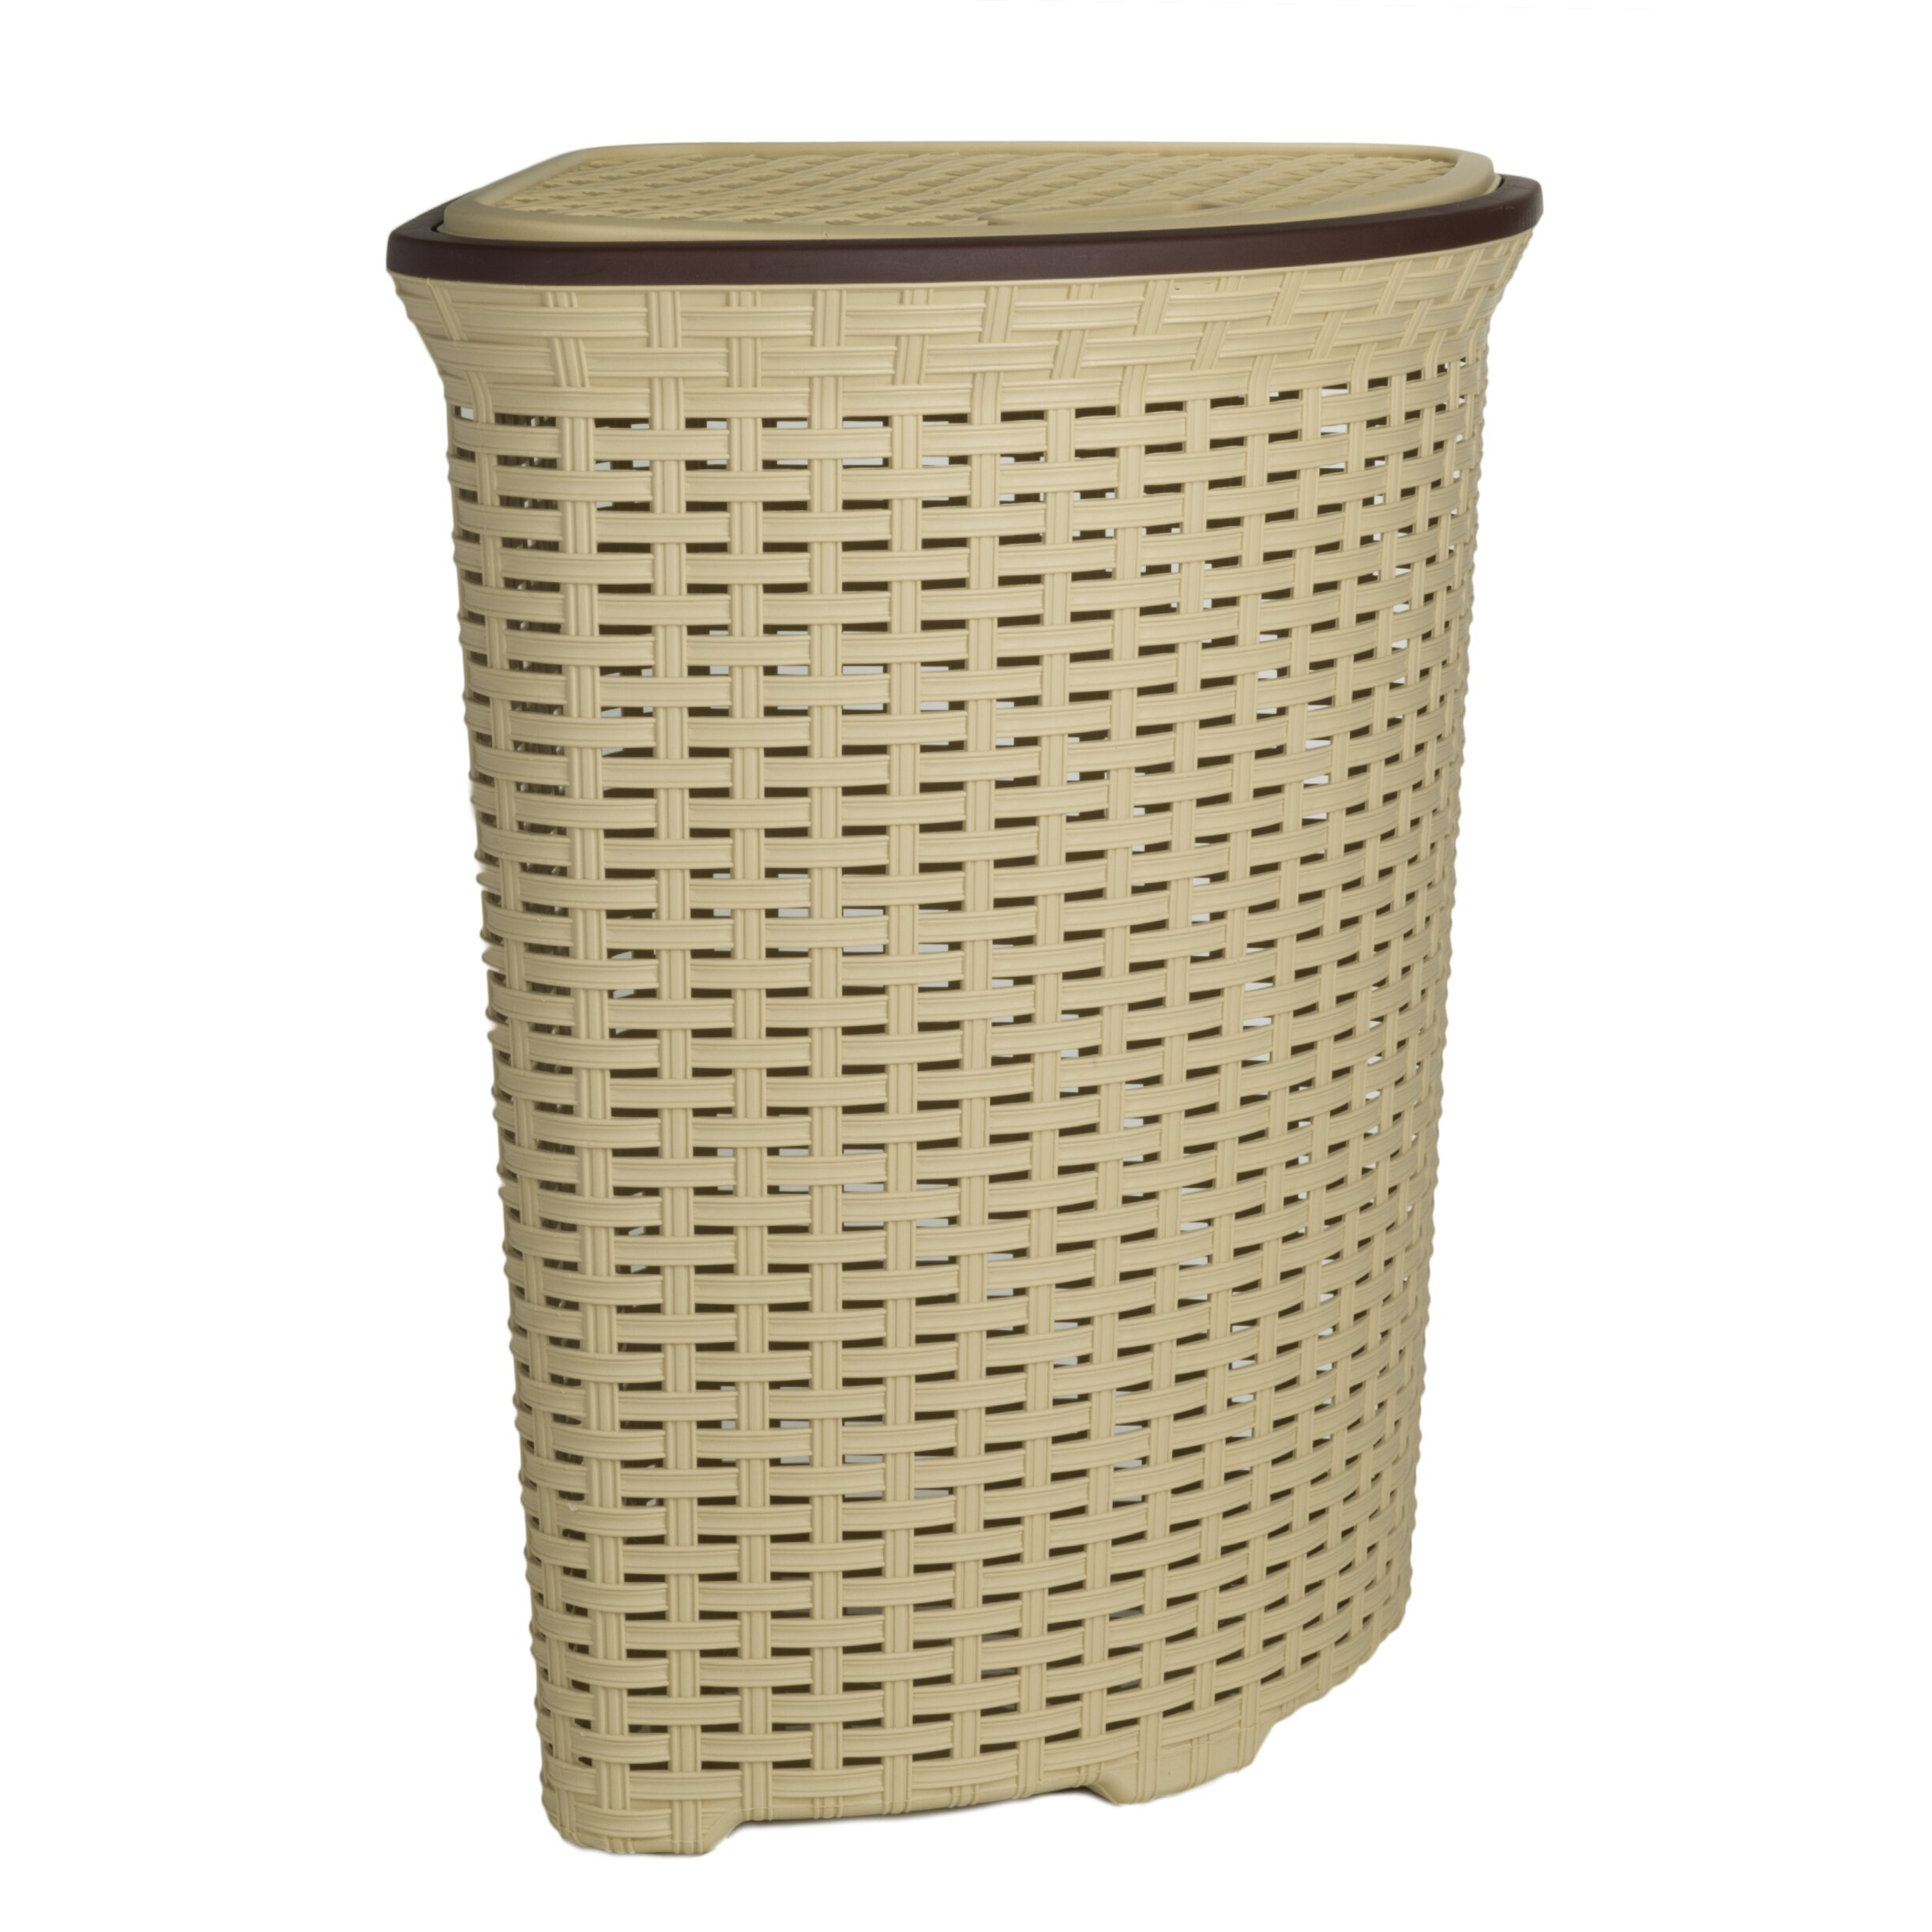 Superior performance superio brand wicker laundry hamper reviews wayfair - Wicker clothes hamper ...